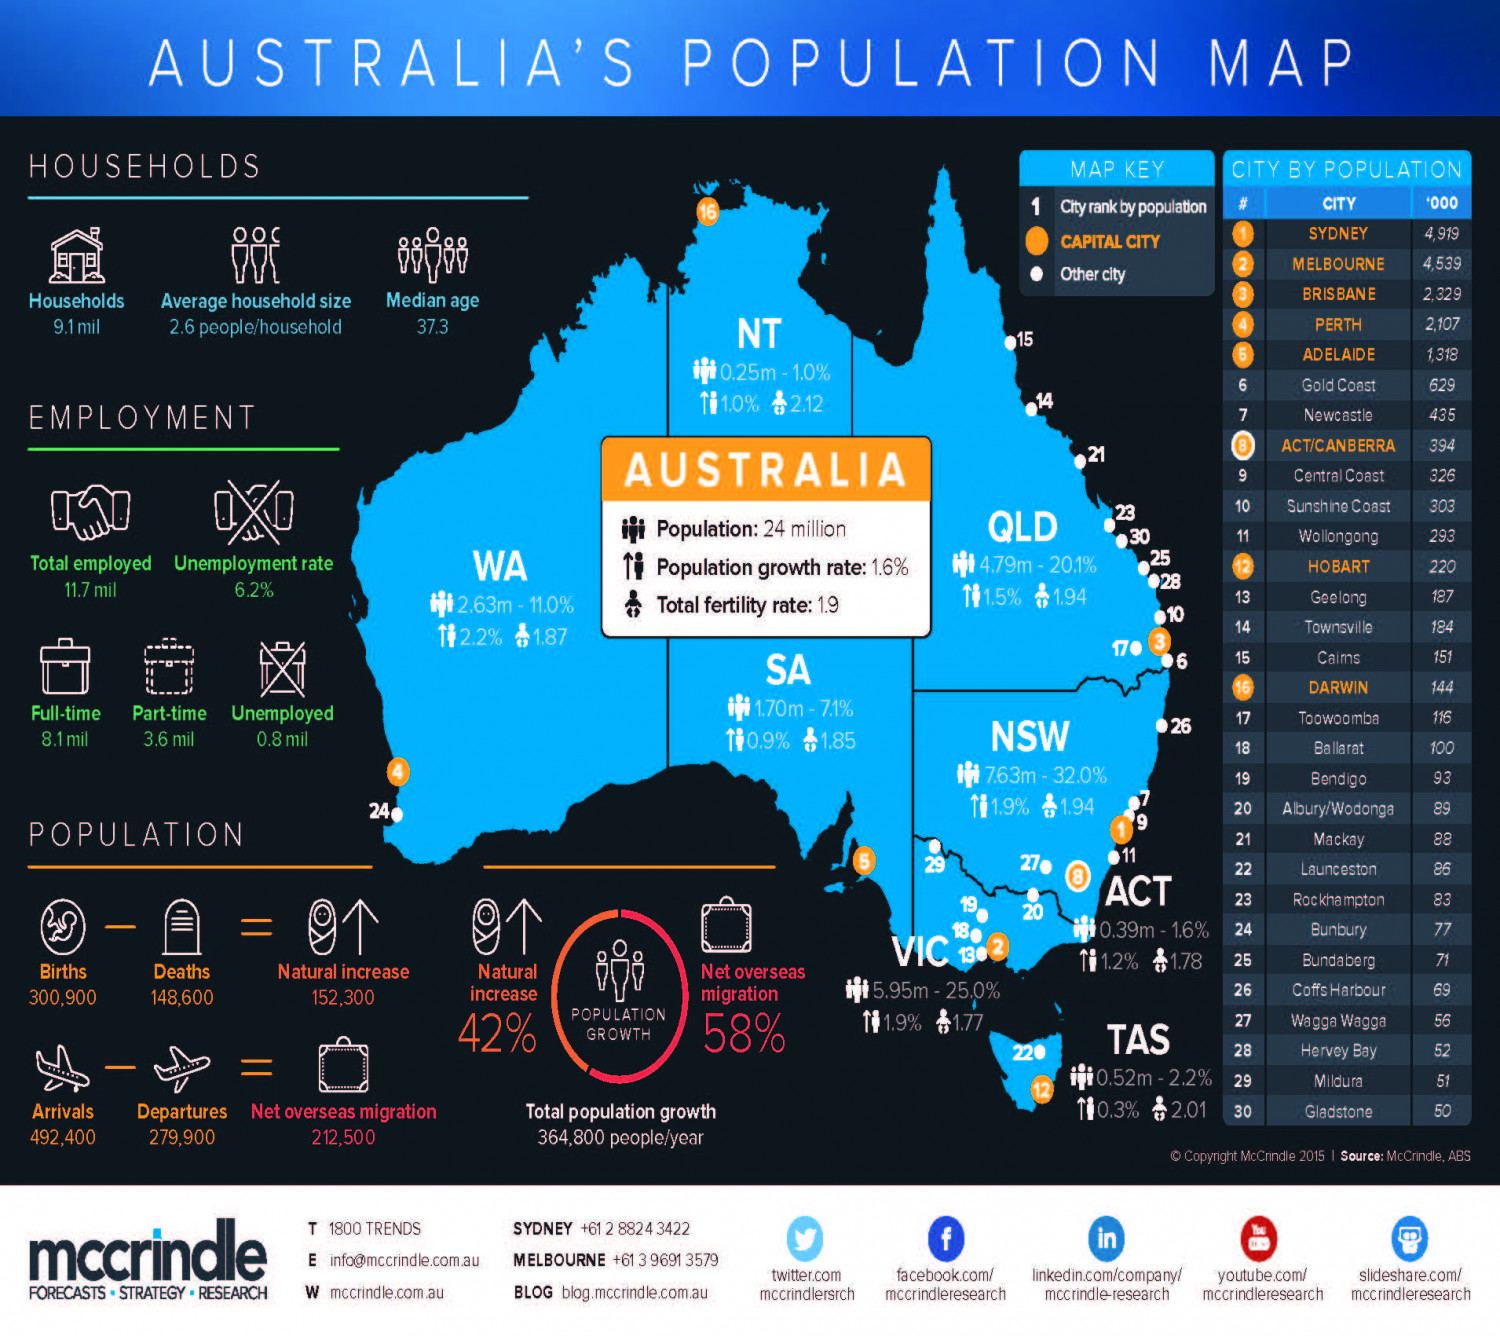 Australia's Population Map Infographic